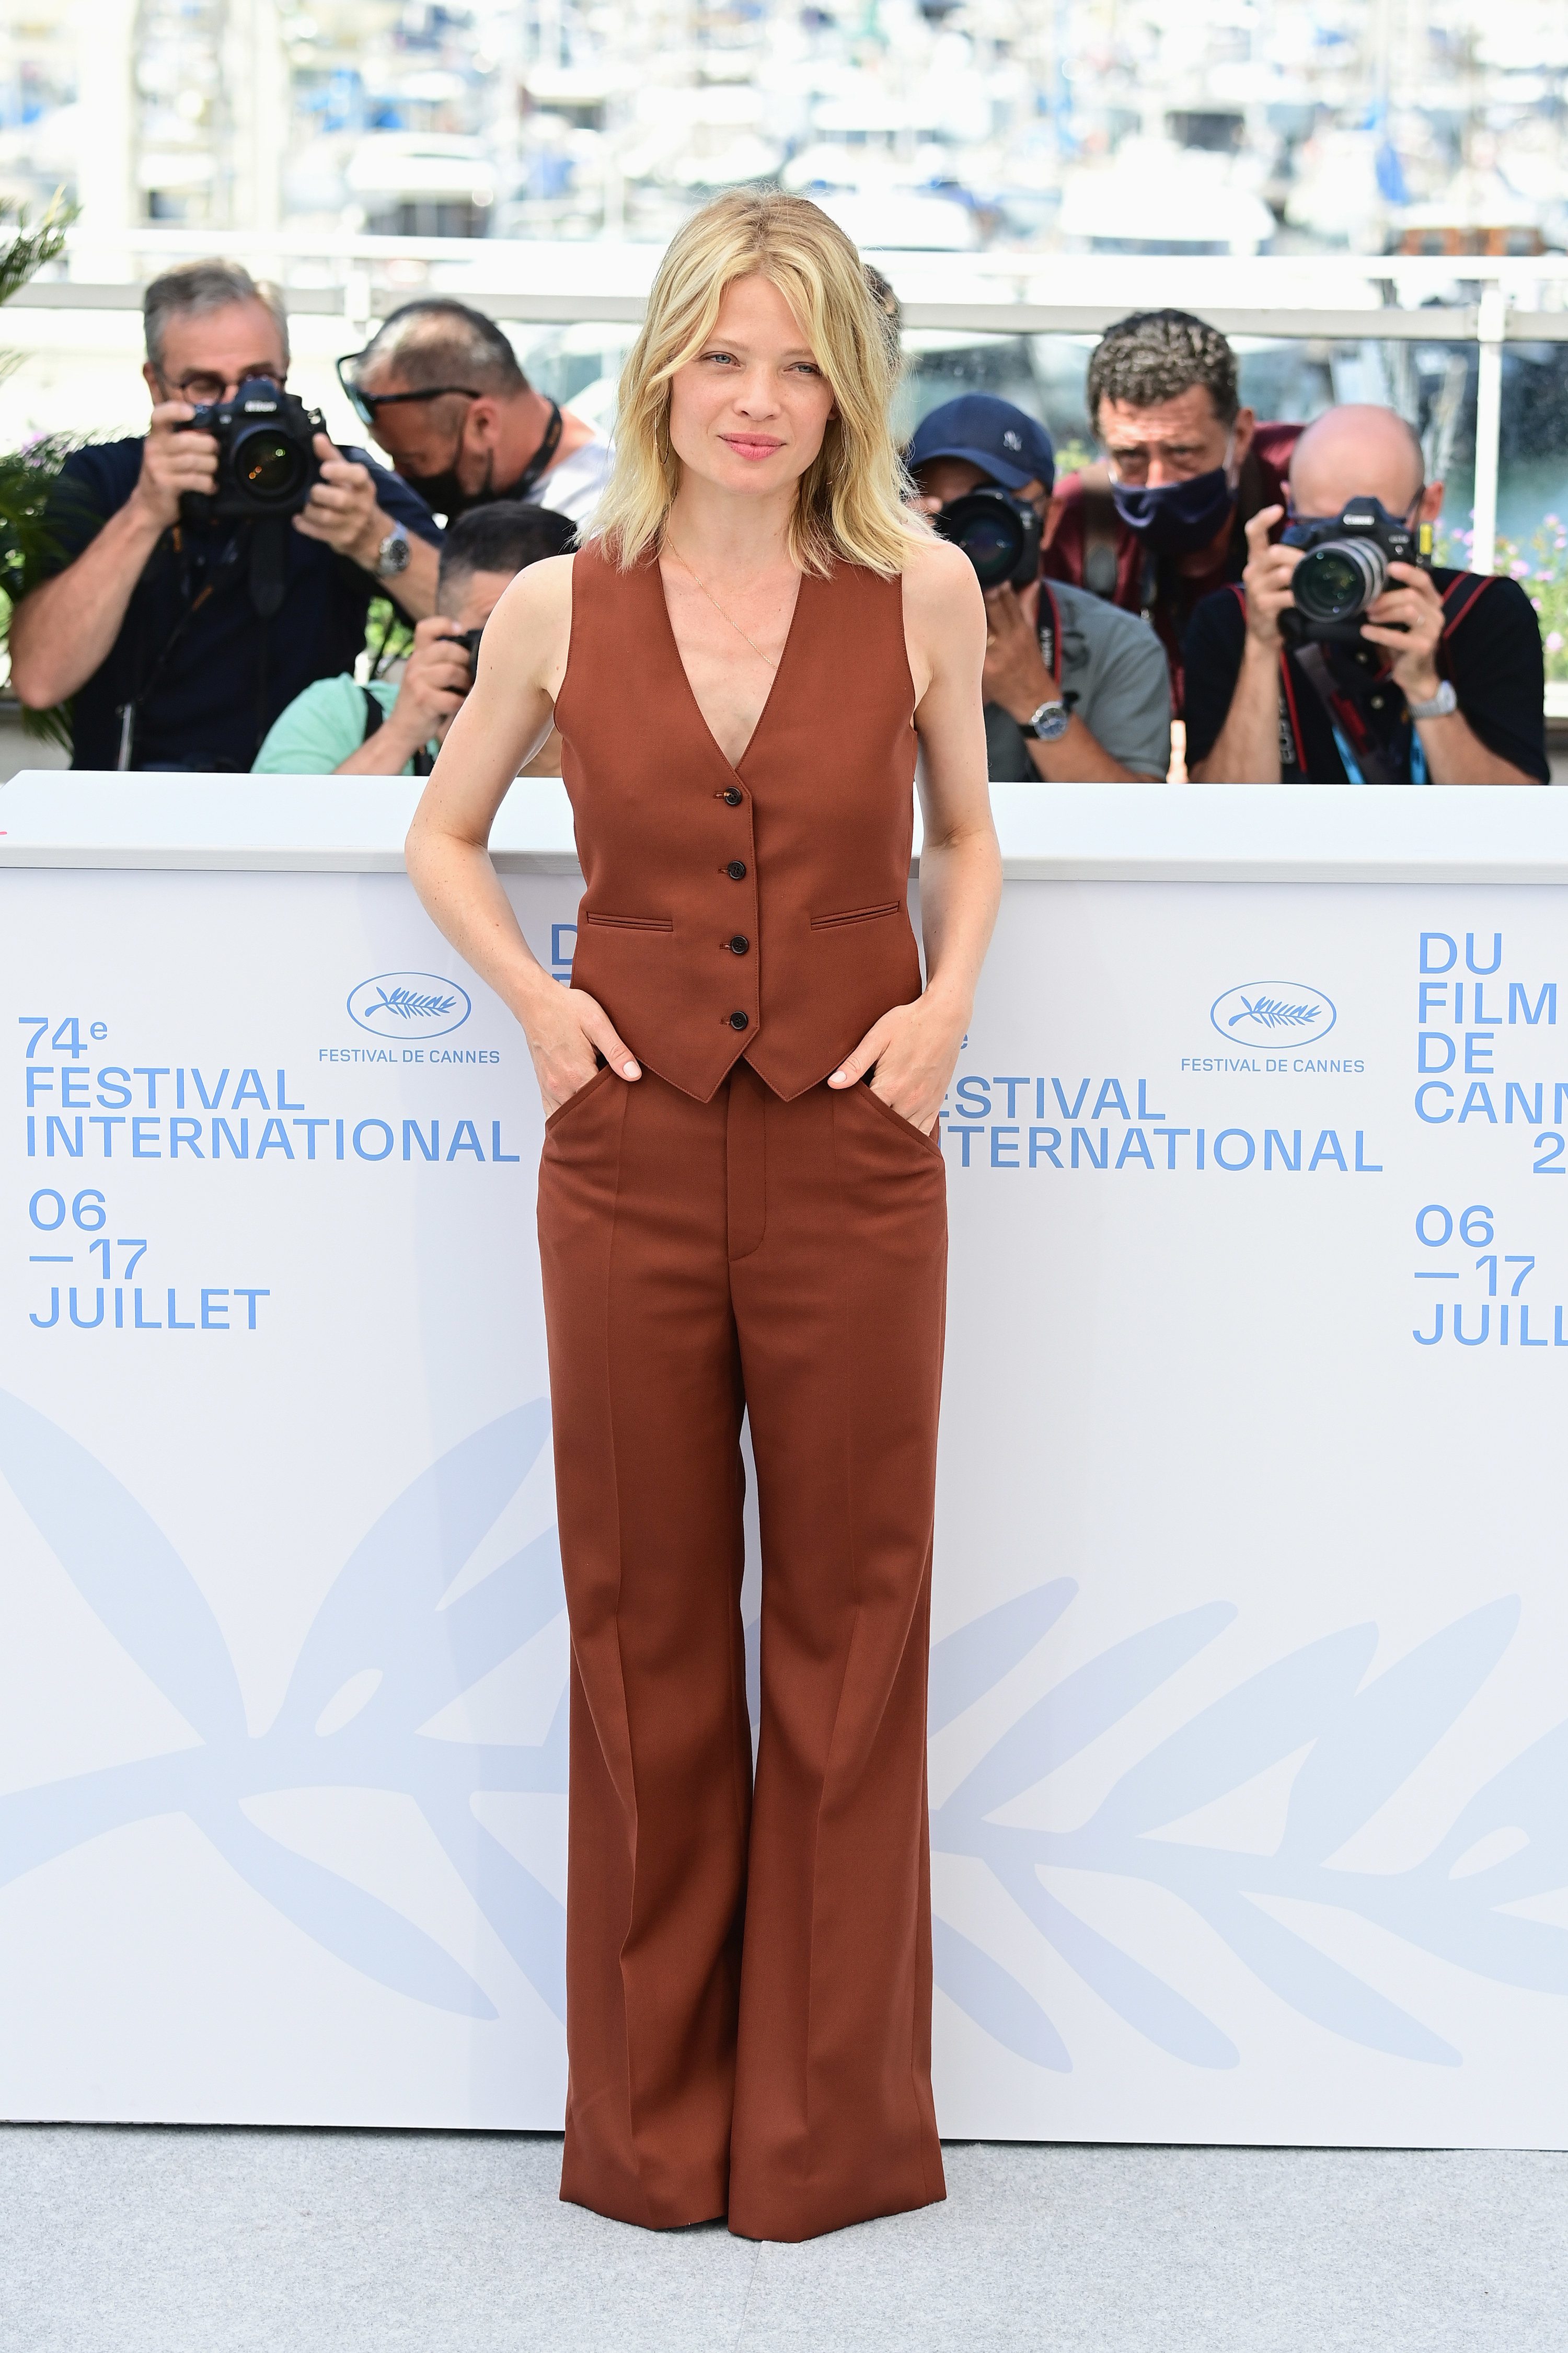 Melanie Thierry at the Cannes Film Festival